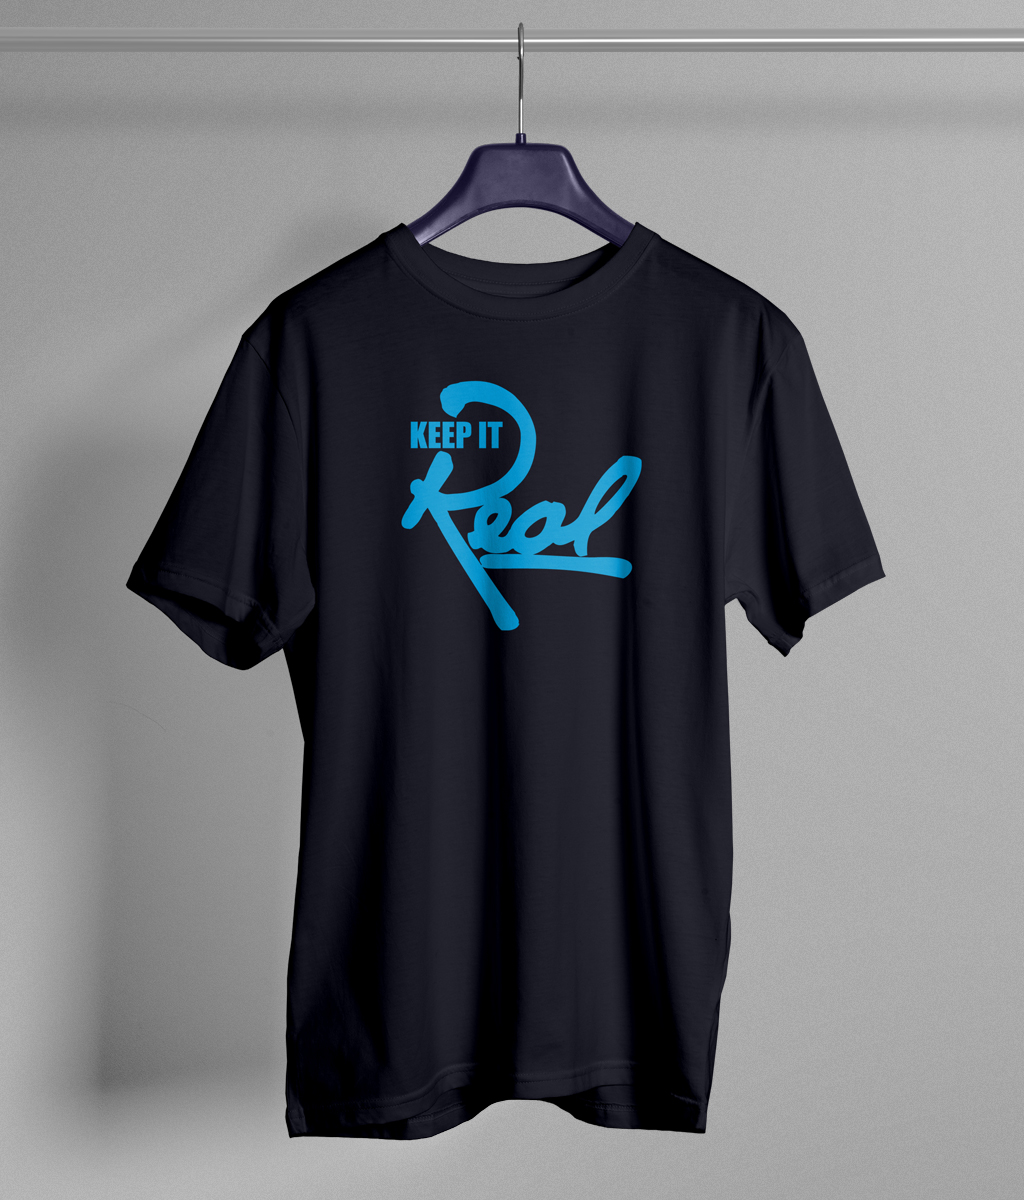 Insignia t shirt navy blue light blue keep it real for Navy blue shirt online